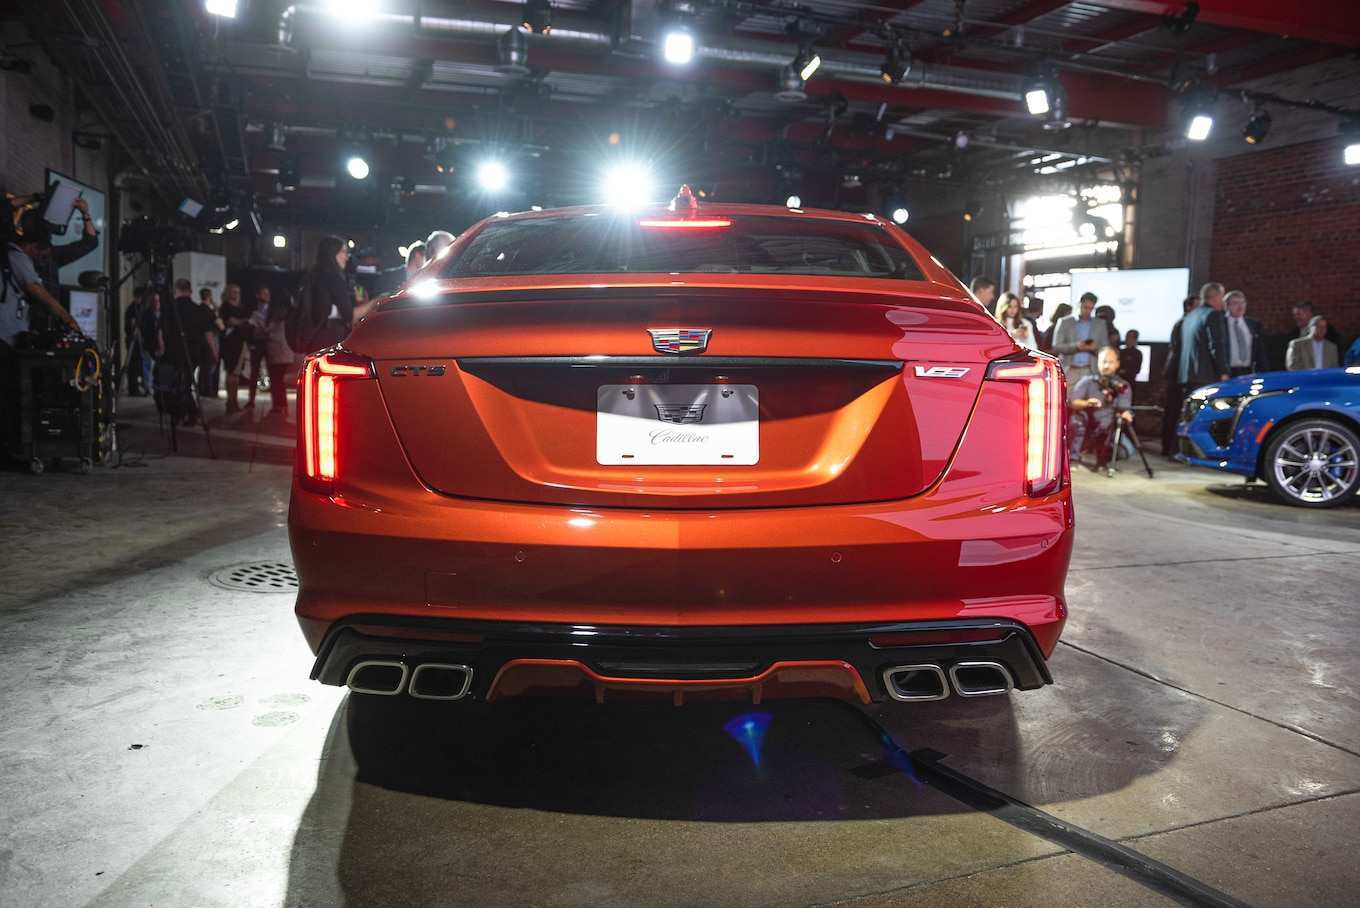 59 A 2020 Cadillac Ct5 V New Concept